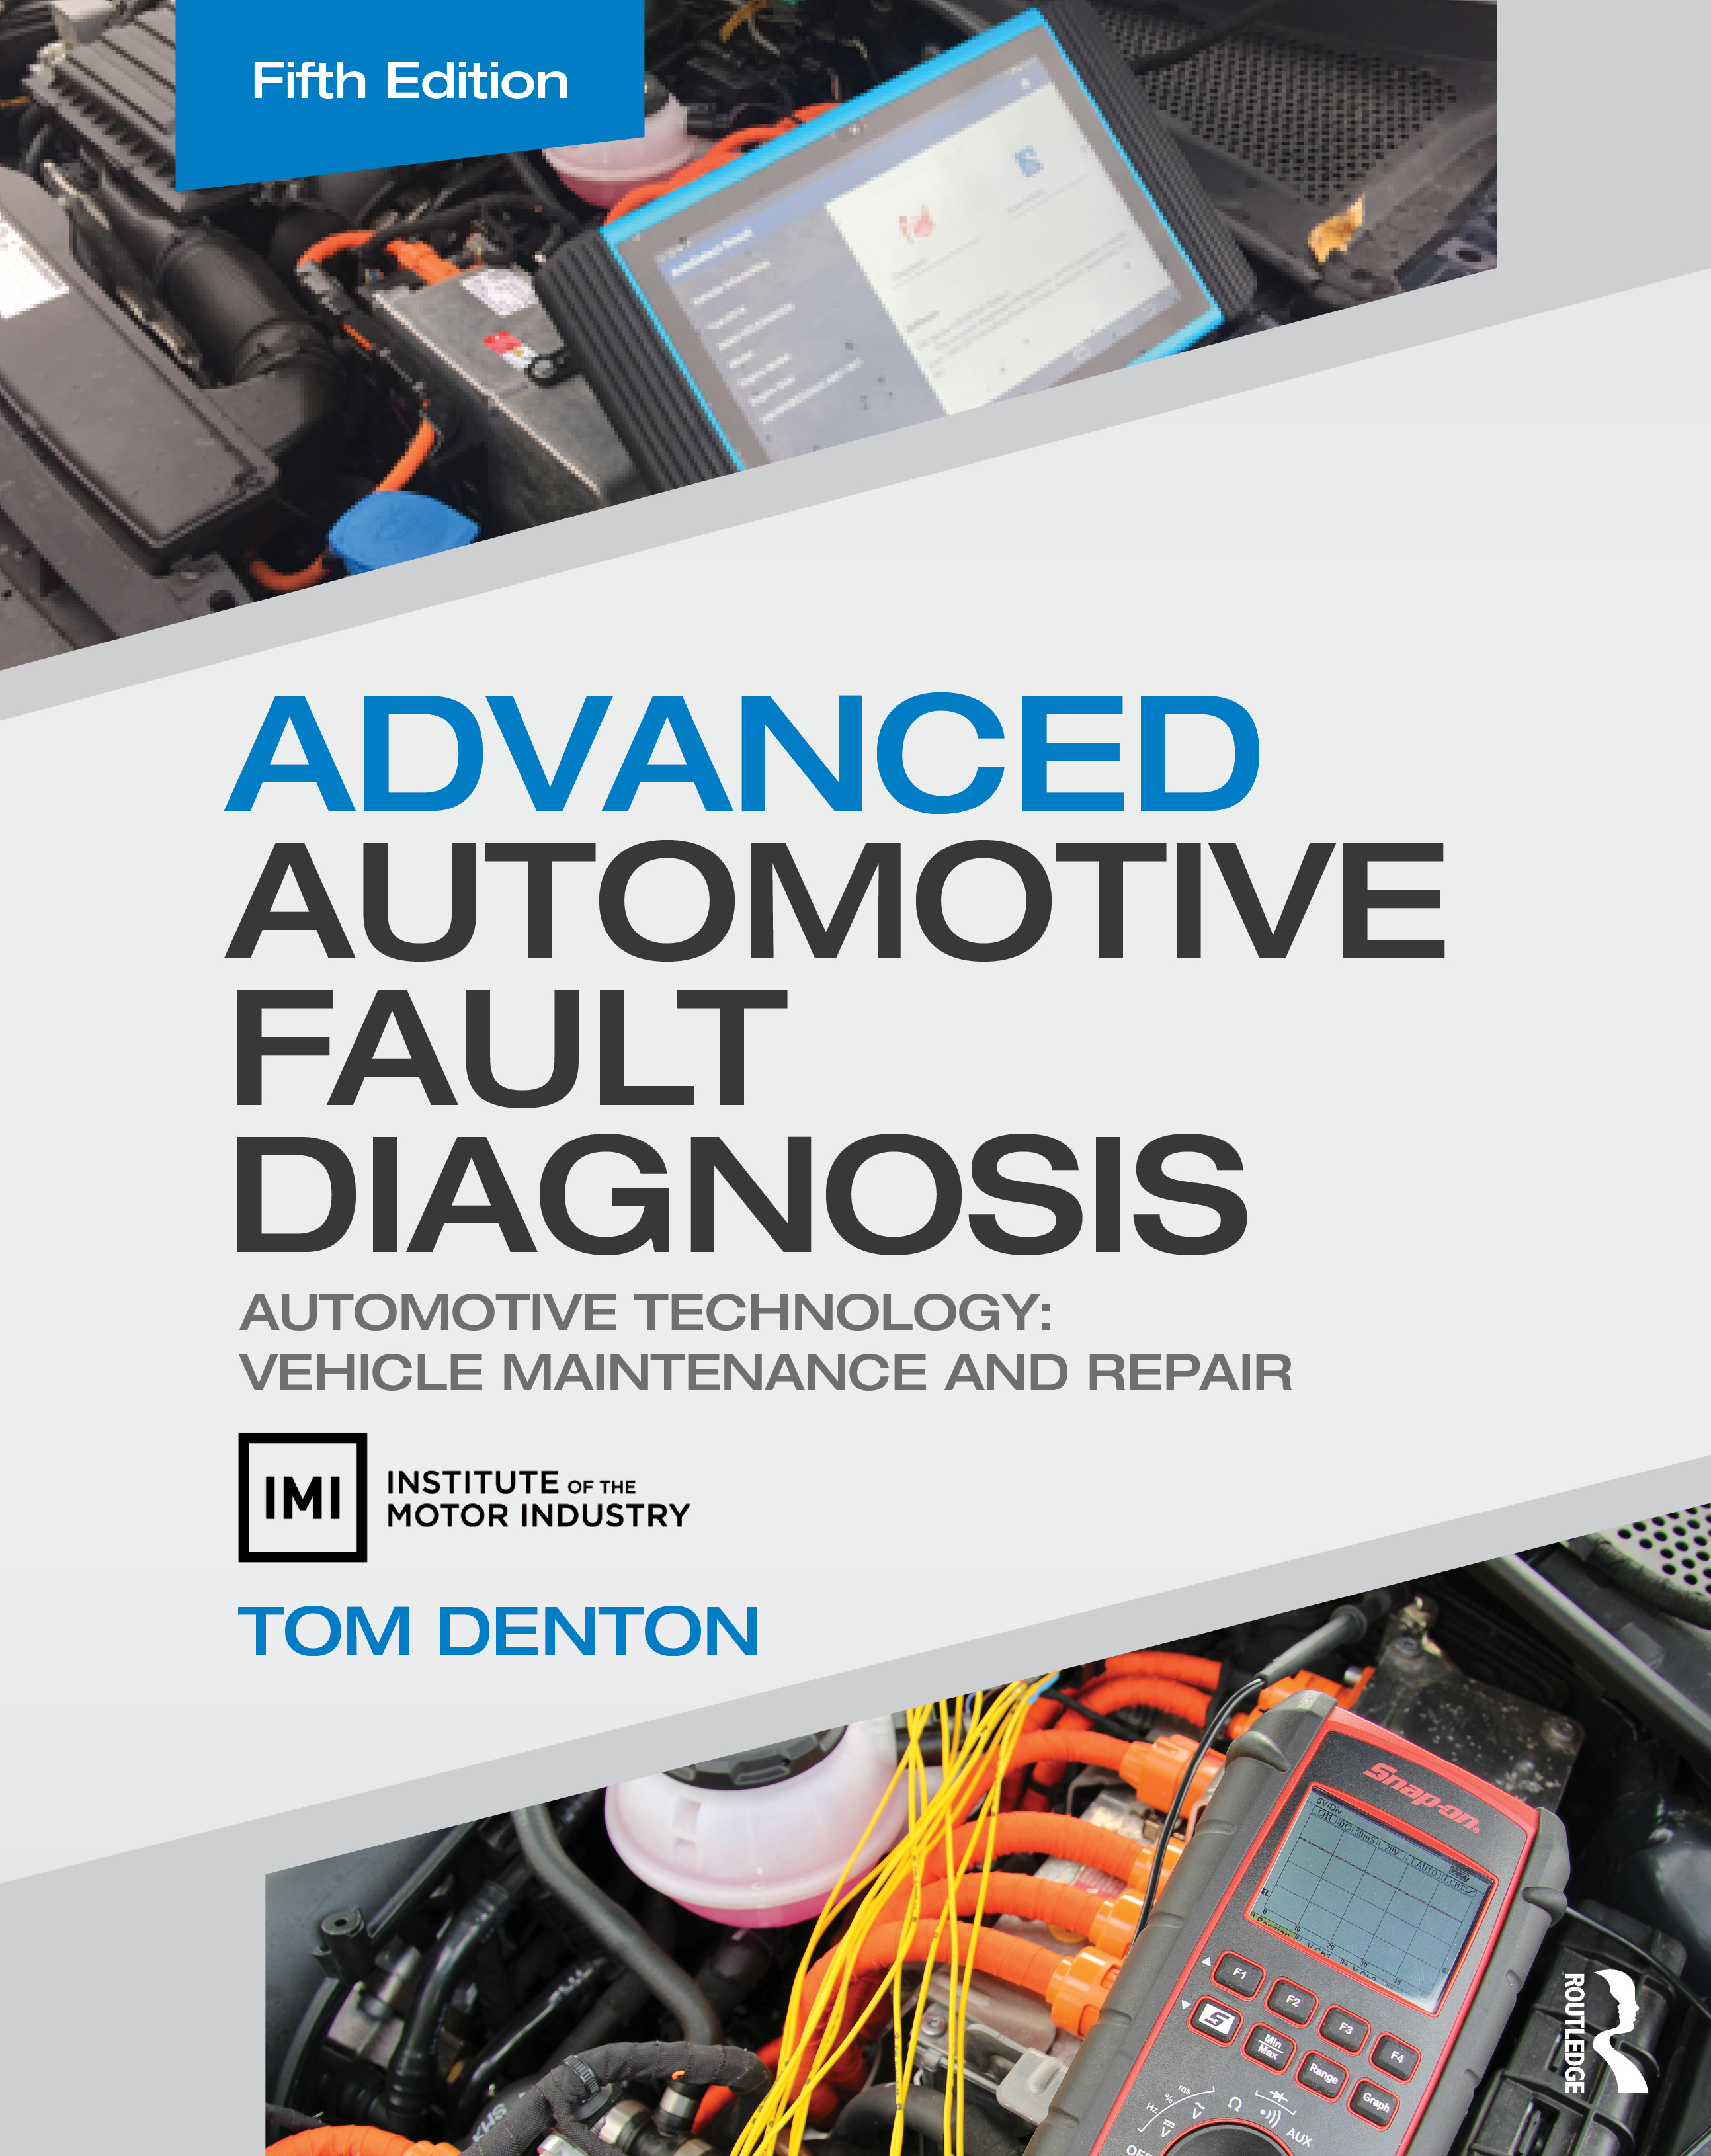 Advanced Automotive Fault Diagnosis